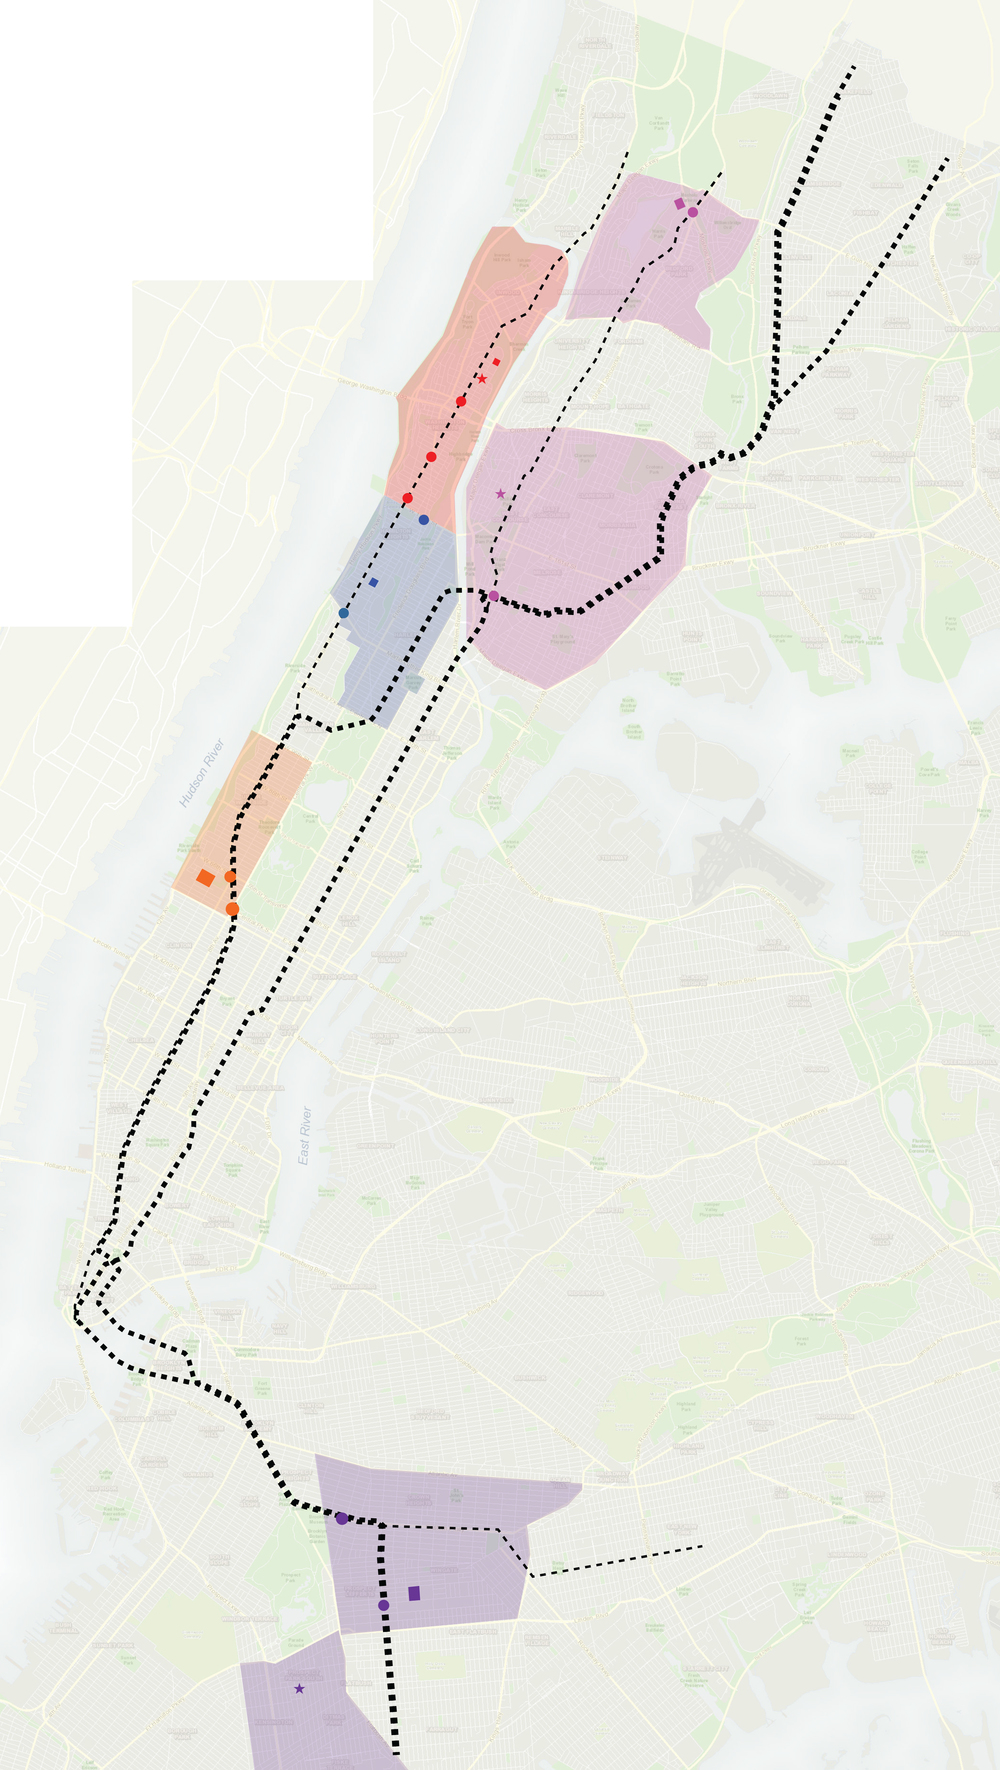 3.1. Using subway lines as paths and primary connectors